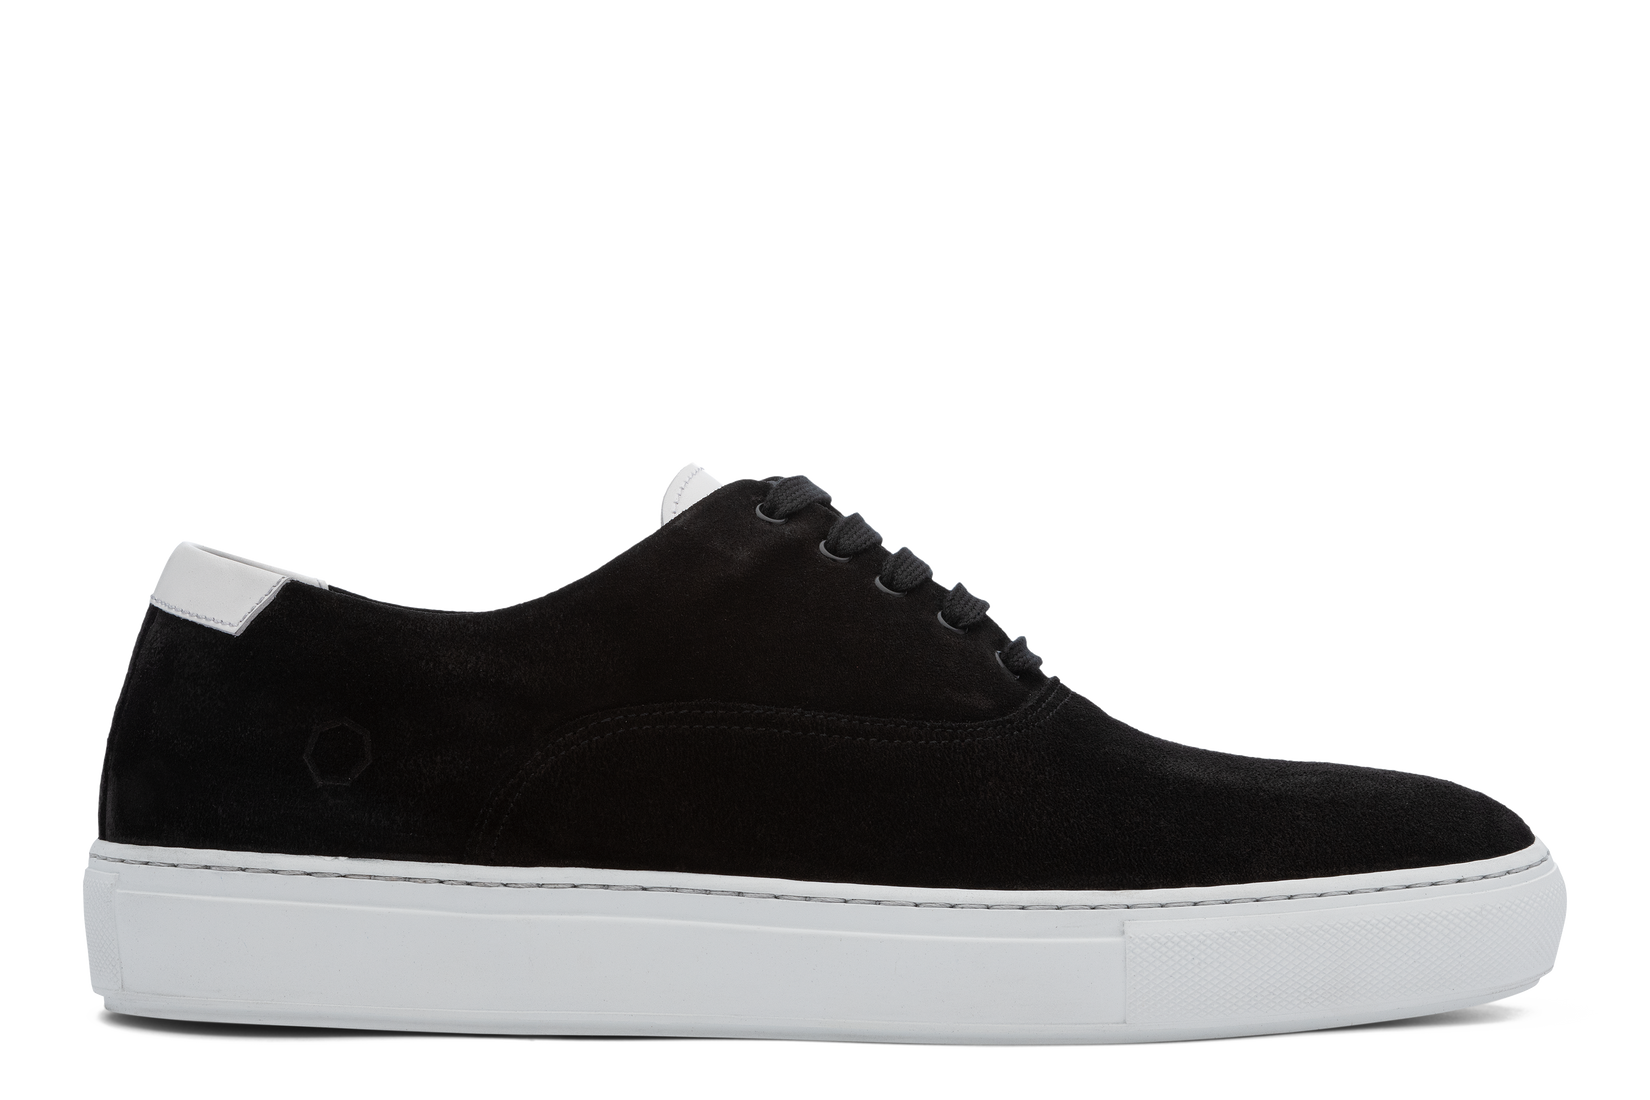 Sunday Skater Sneaker in Black (FINAL SALE)